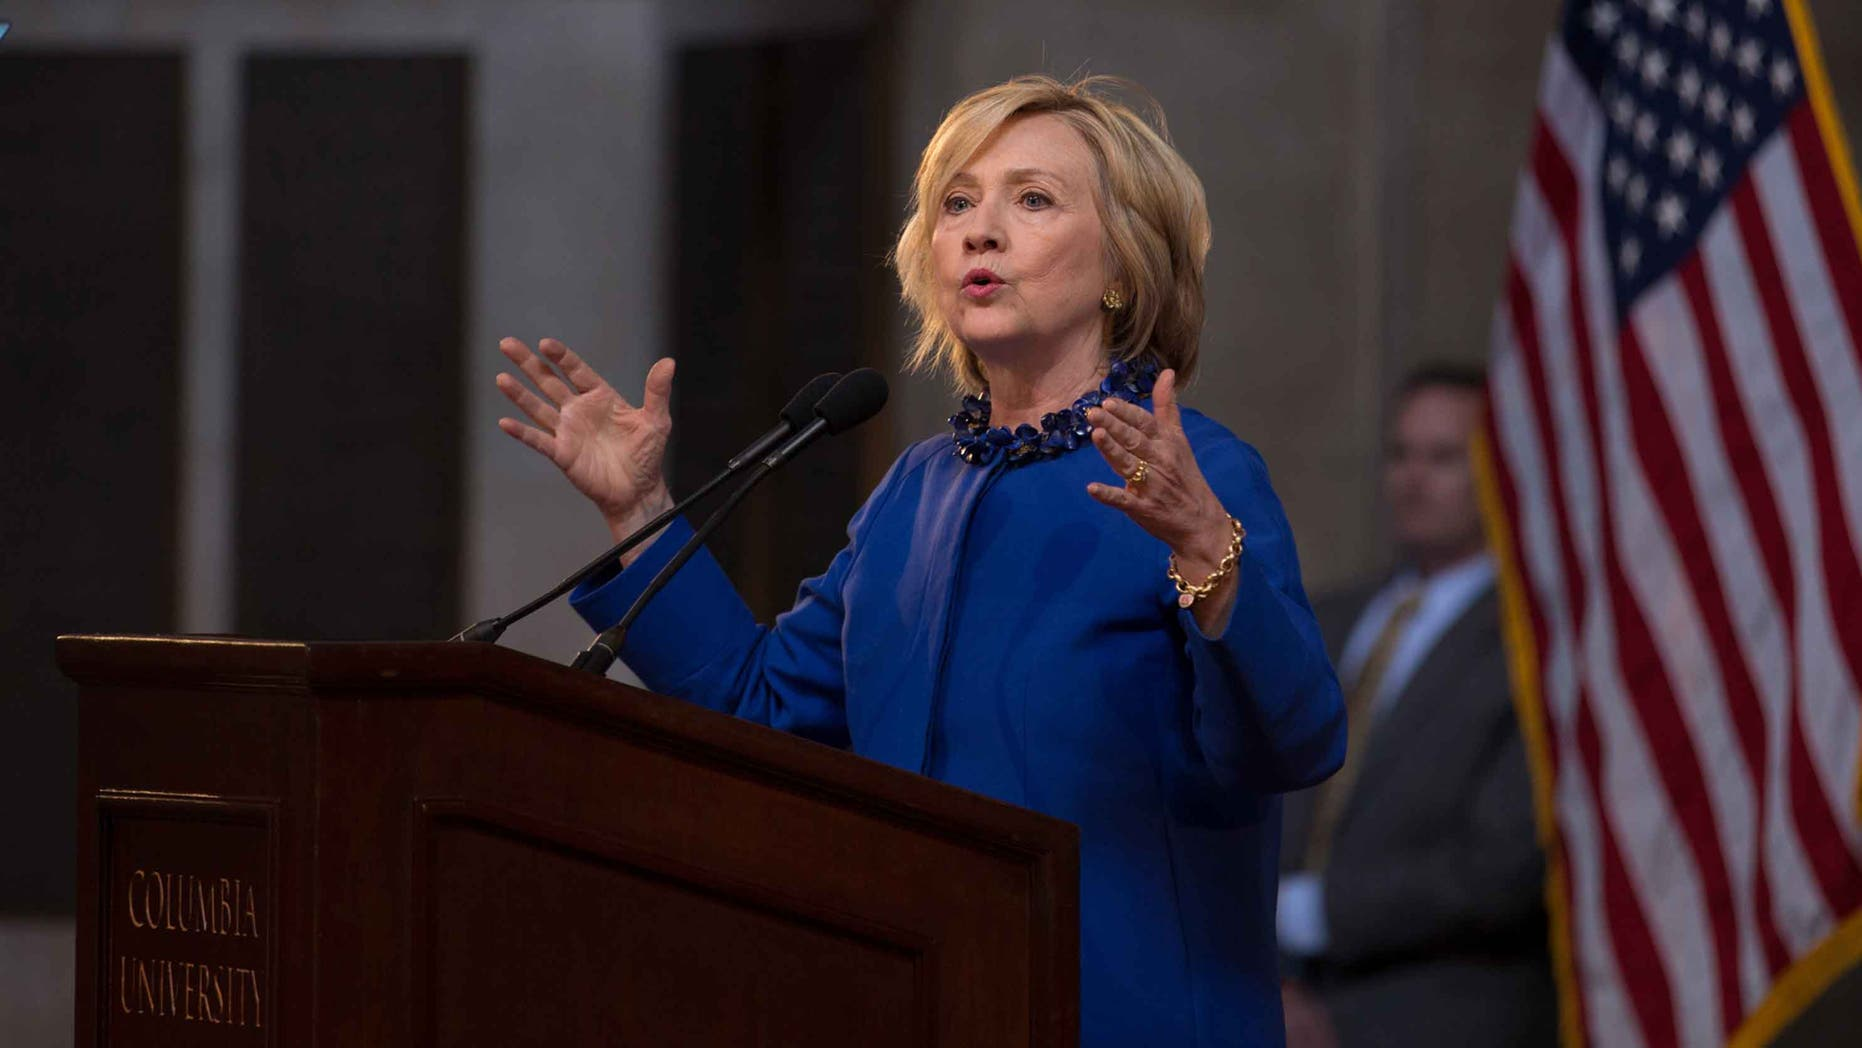 NEW YORK, NY - APRIL 29:  Democratic presidential hopeful and former Secretary of State Hillary Clinton speaks during the David N. Dinkins Leadership and Public Policy Forum at Columbia University April 29, 2015 in New York City. Clinton addressed the unrest in Baltimore calling for police body cameras and a reform to sentencing.   (Photo by Kevin Hagen/Getty Images)